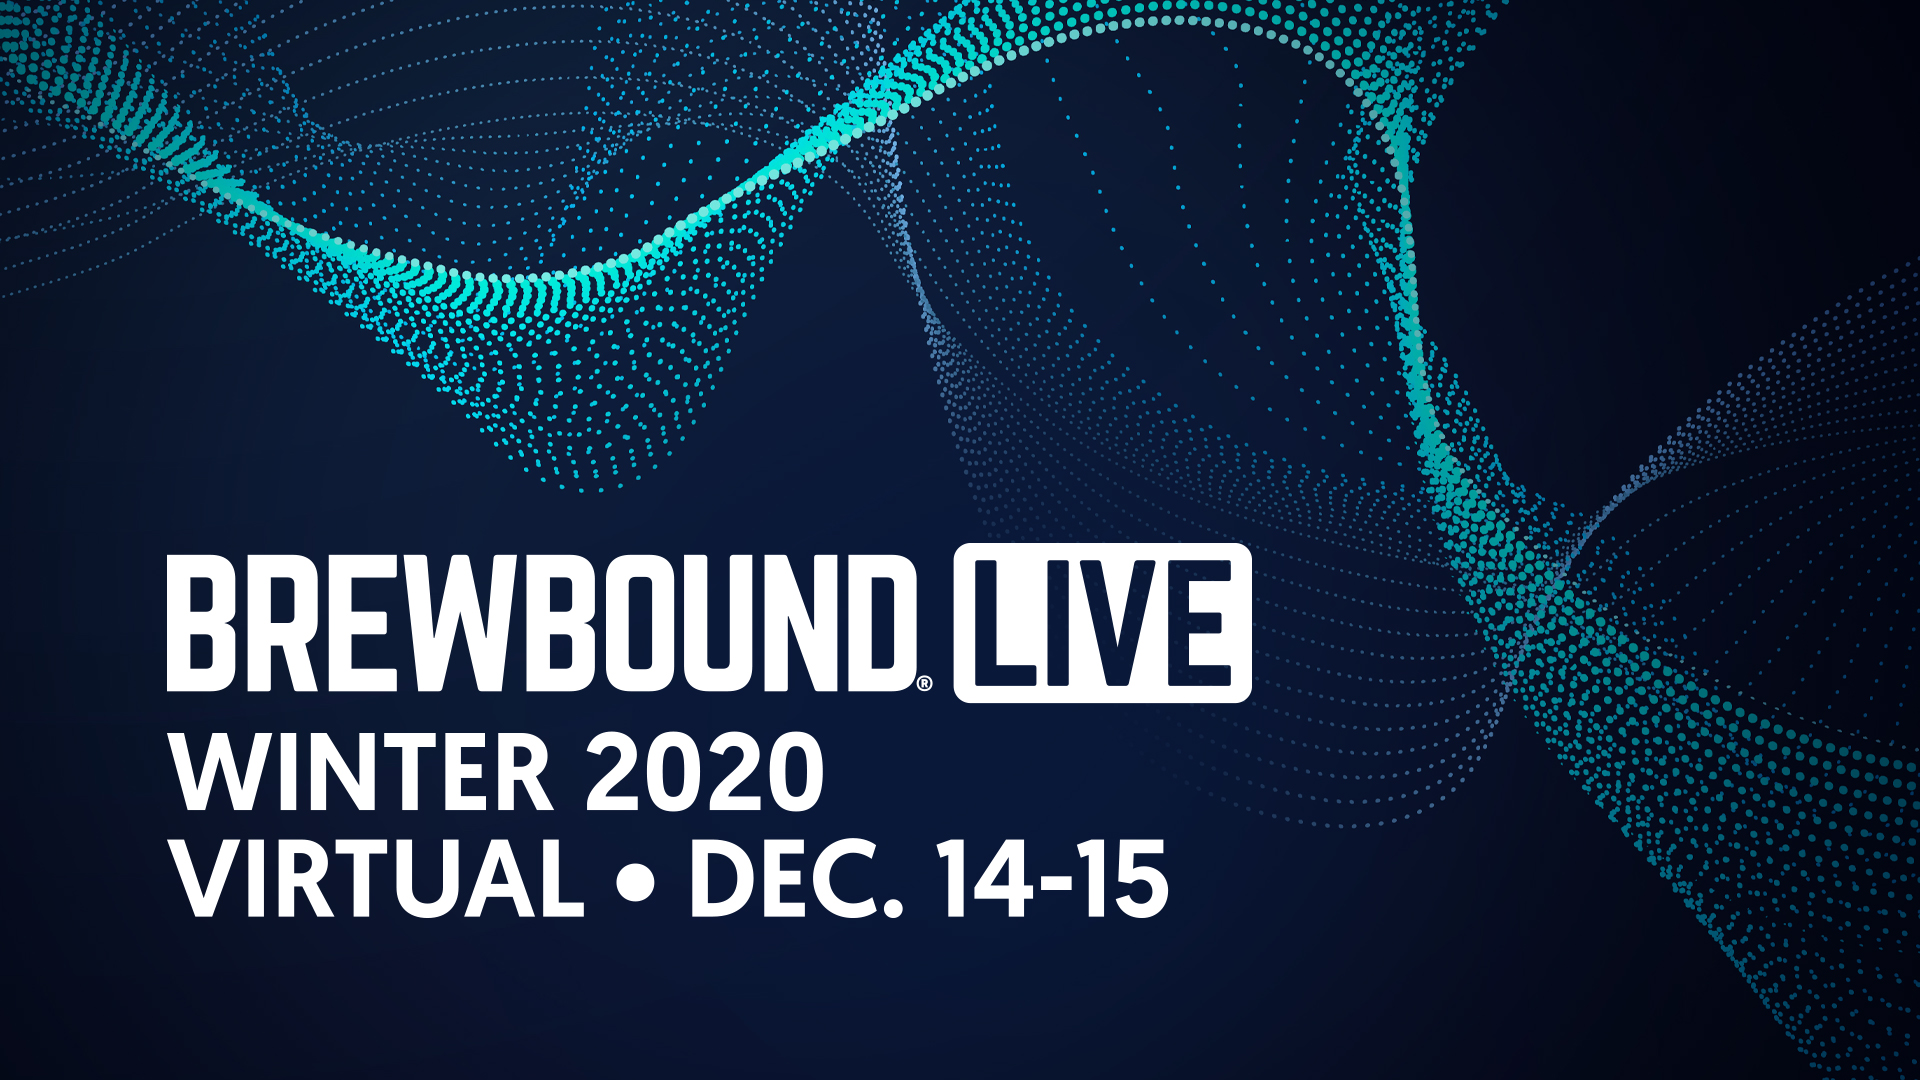 Brewbound...Live Winter 2020